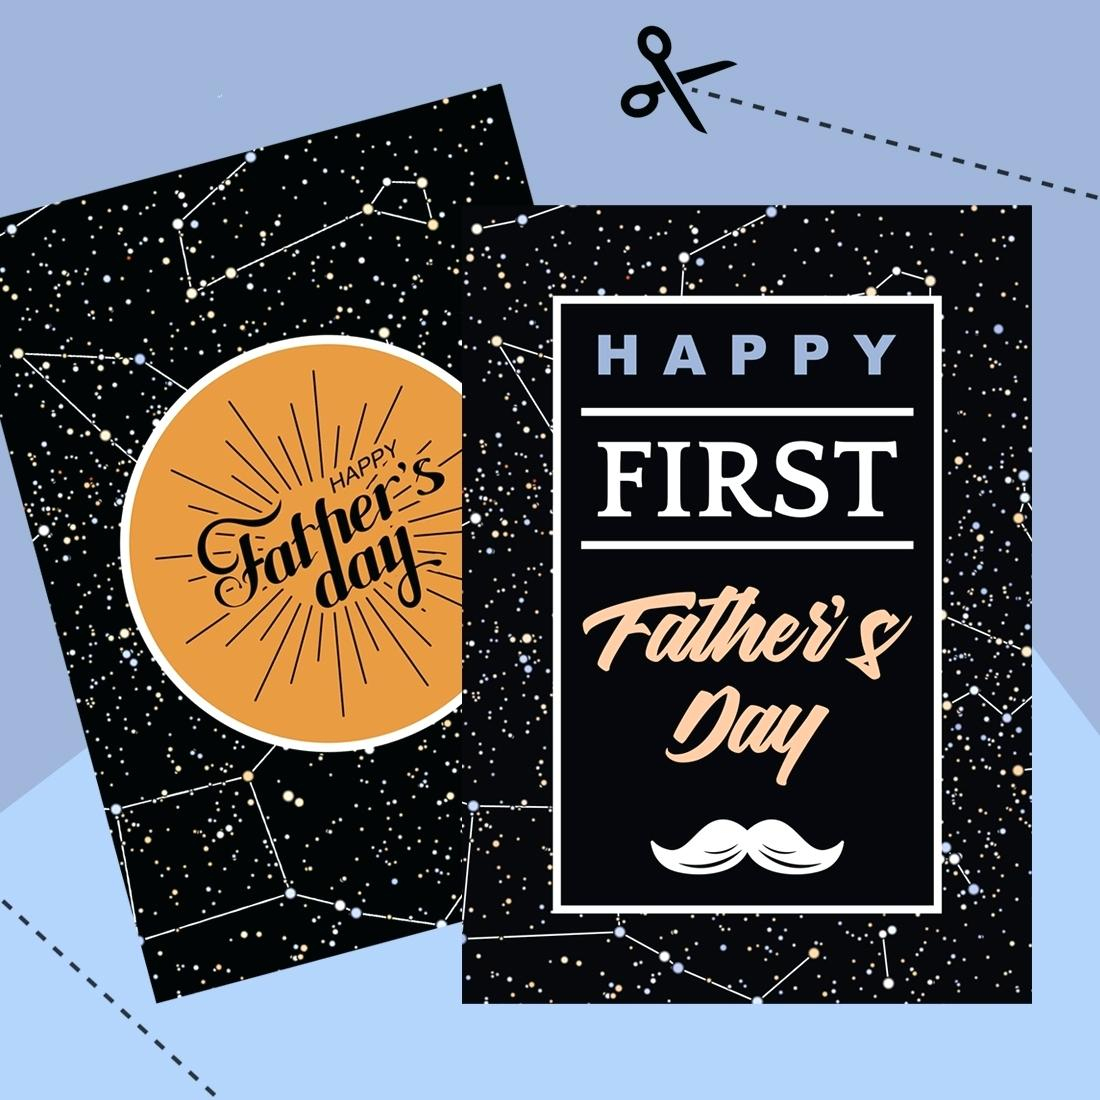 Father Day Card Printable Free – Baothanhnien.club - Free Printable Father's Day Card From Wife To Husband